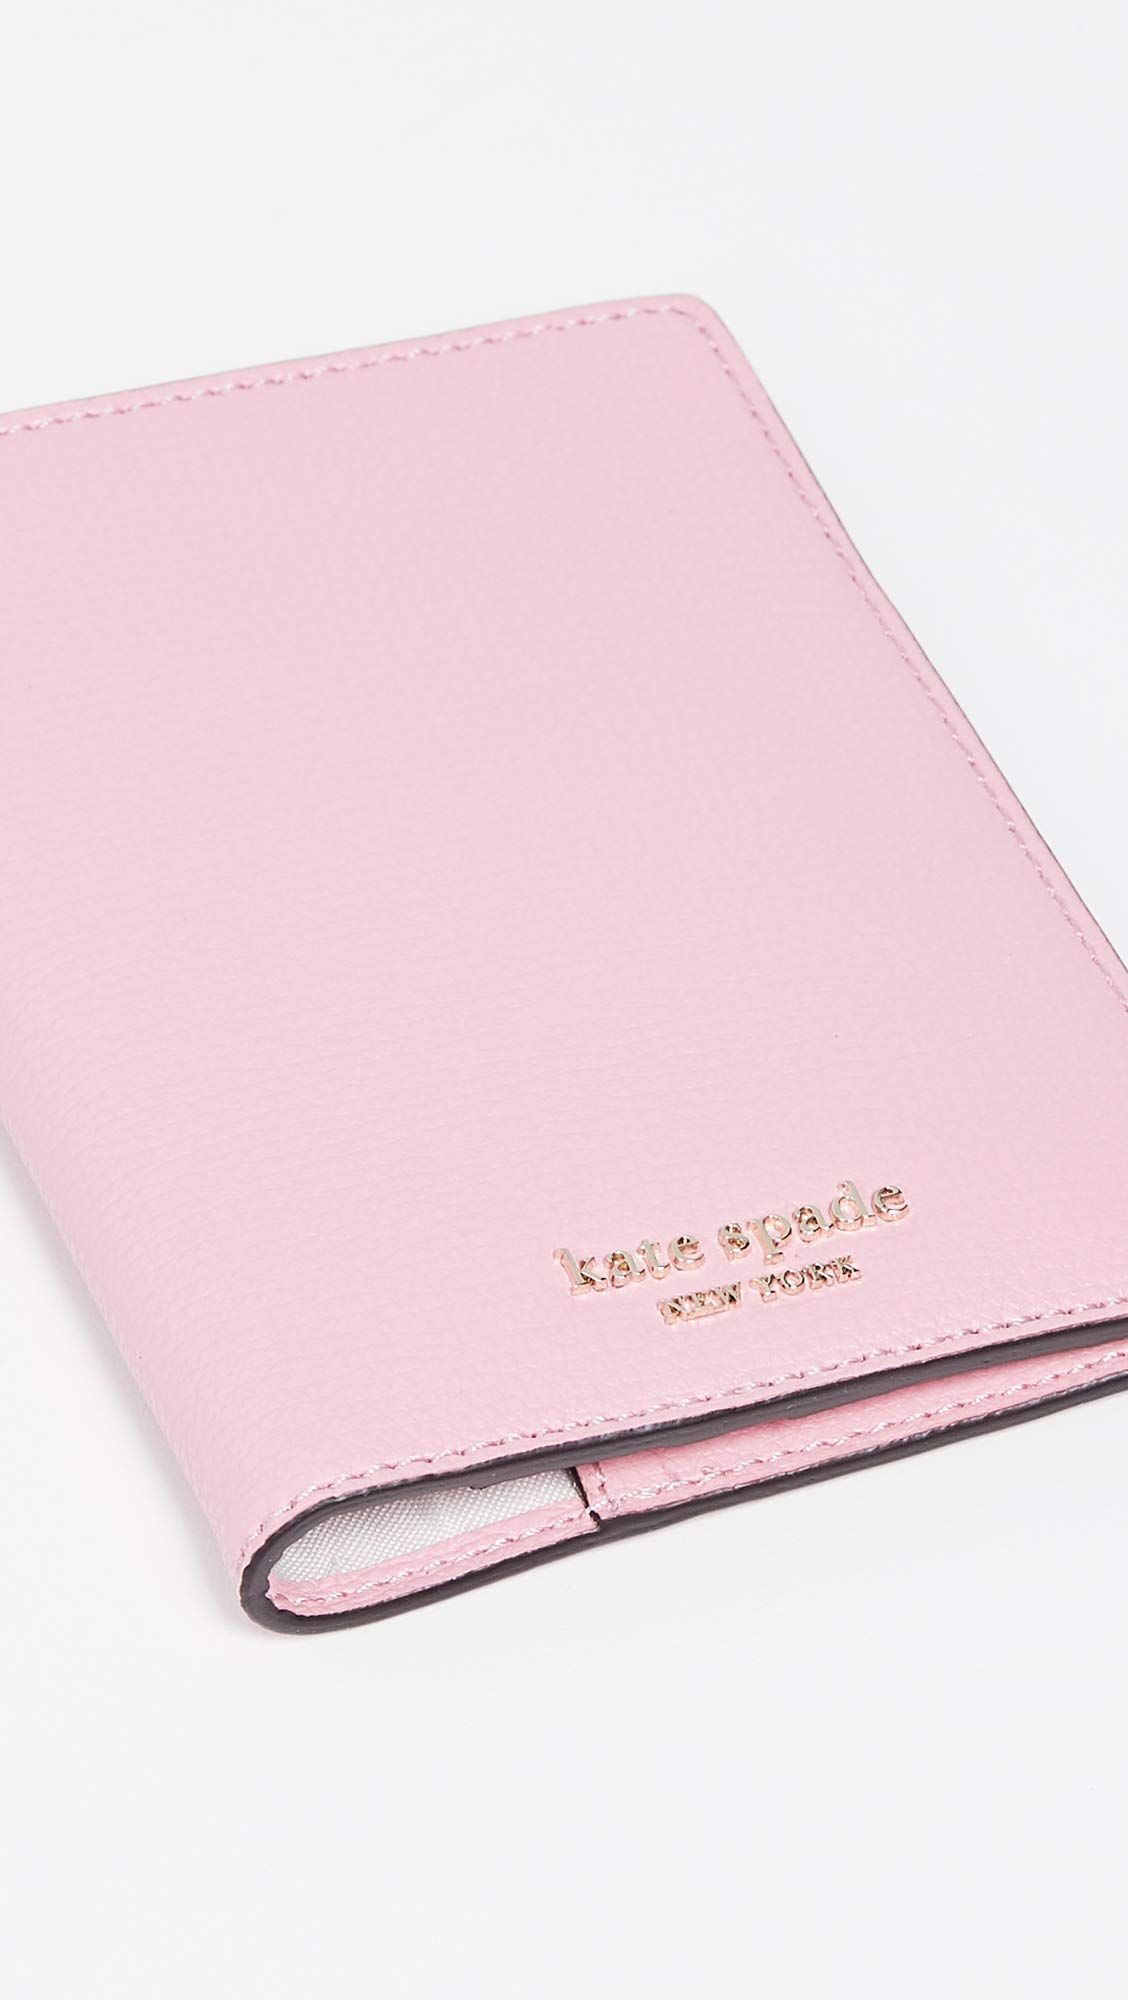 Kate Spade New York Women's Sylvia Passport Holder, Rococo Pink, One Size by Kate Spade New York (Image #4)